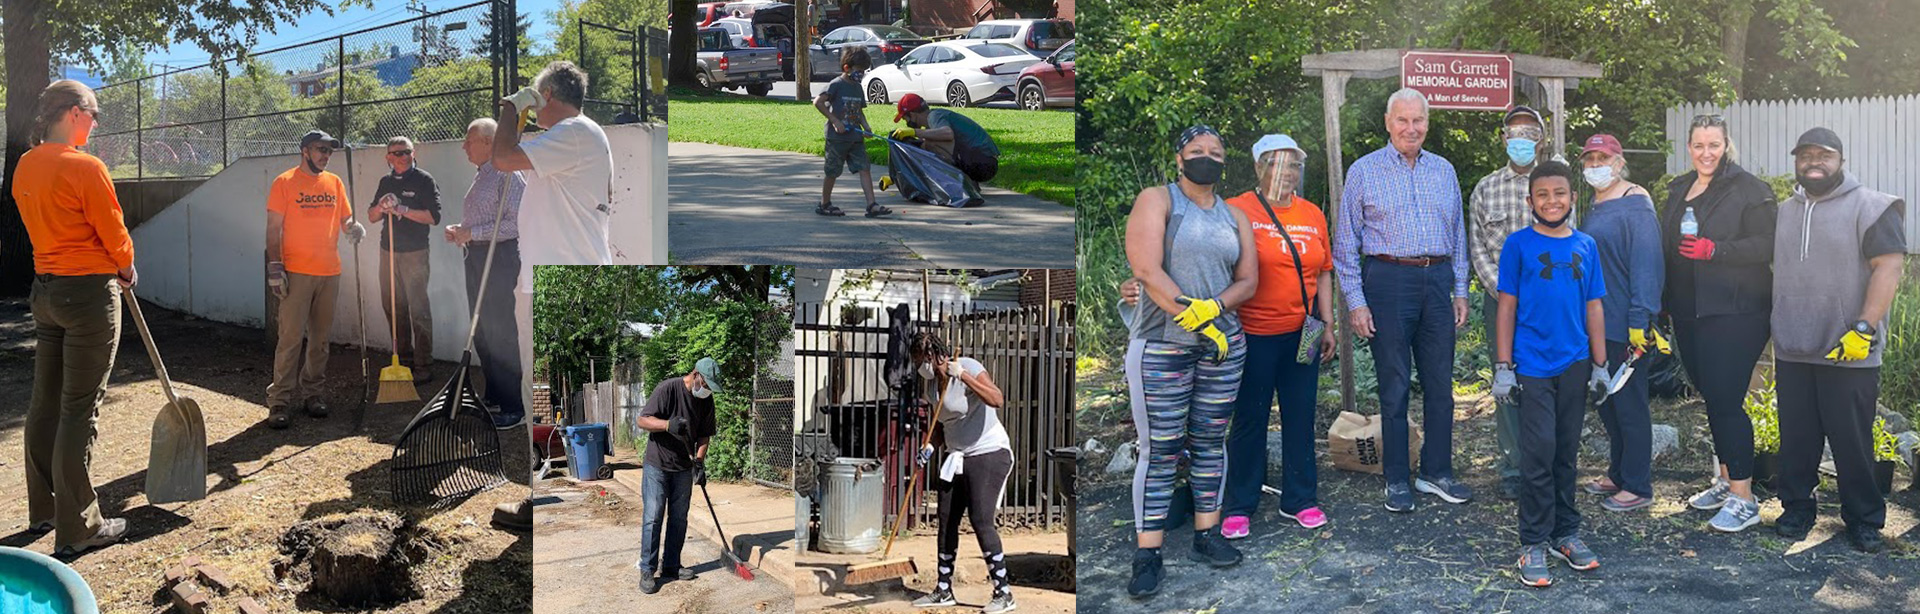 Community Cleanup Day is an annual event to encourage beautifying the city.